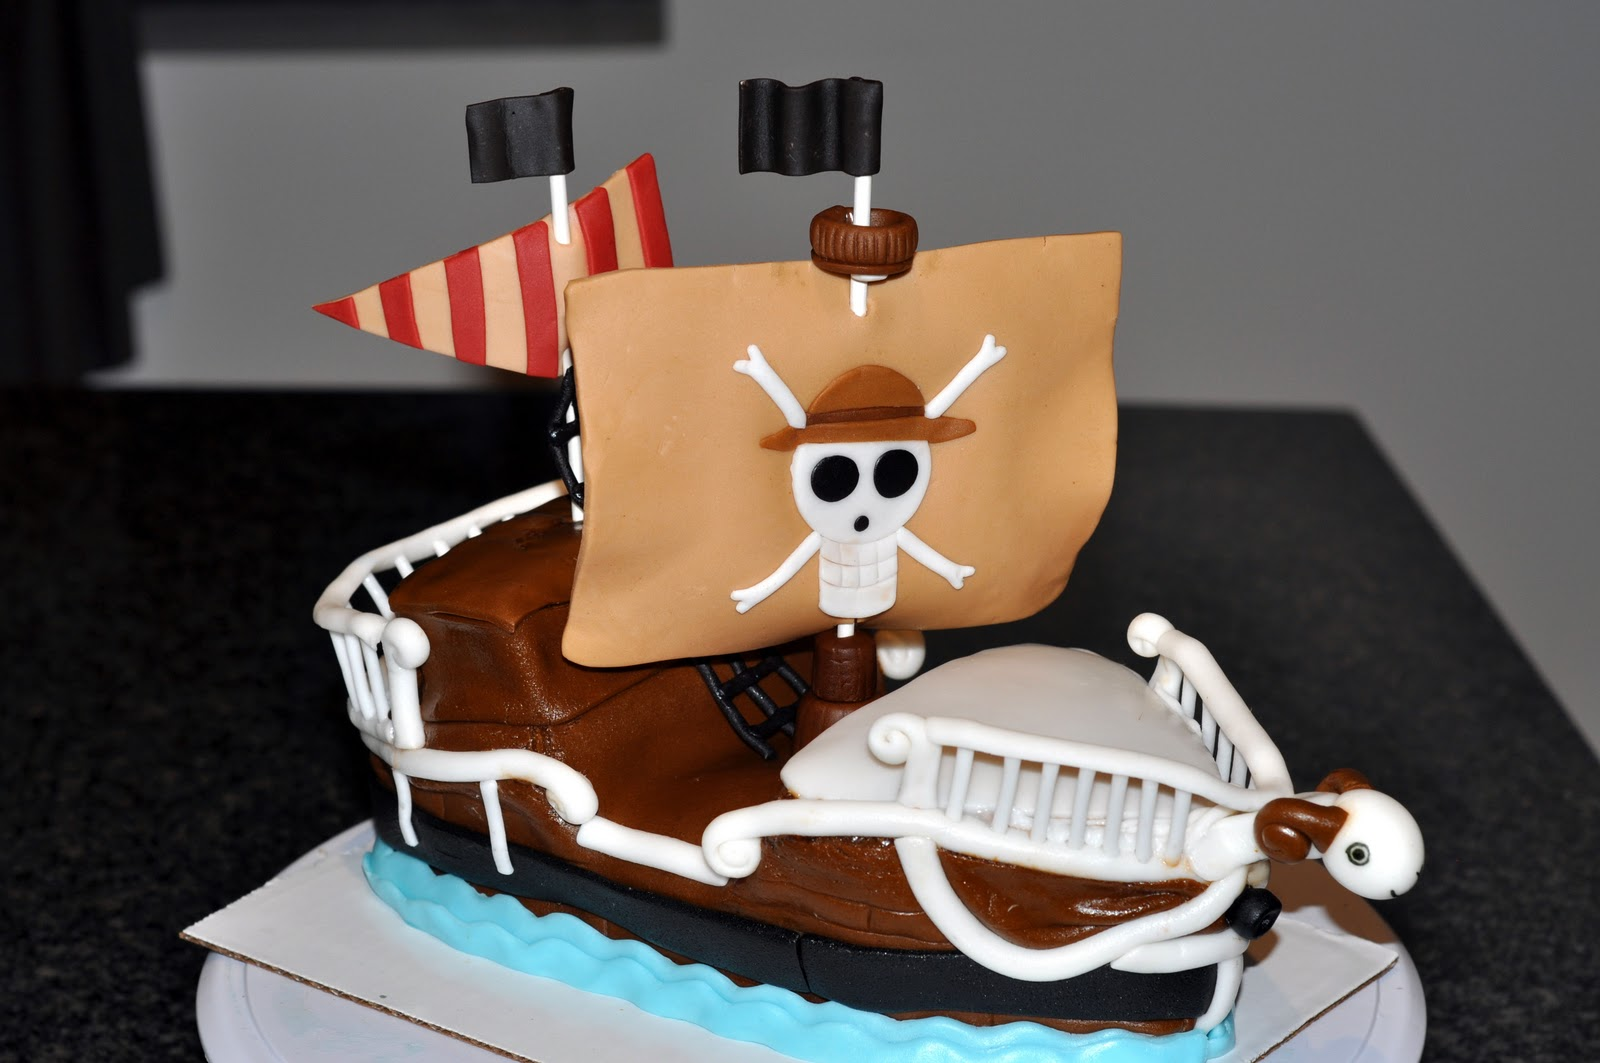 One Piece Pirate Ship Cake Sweet Kats Creations